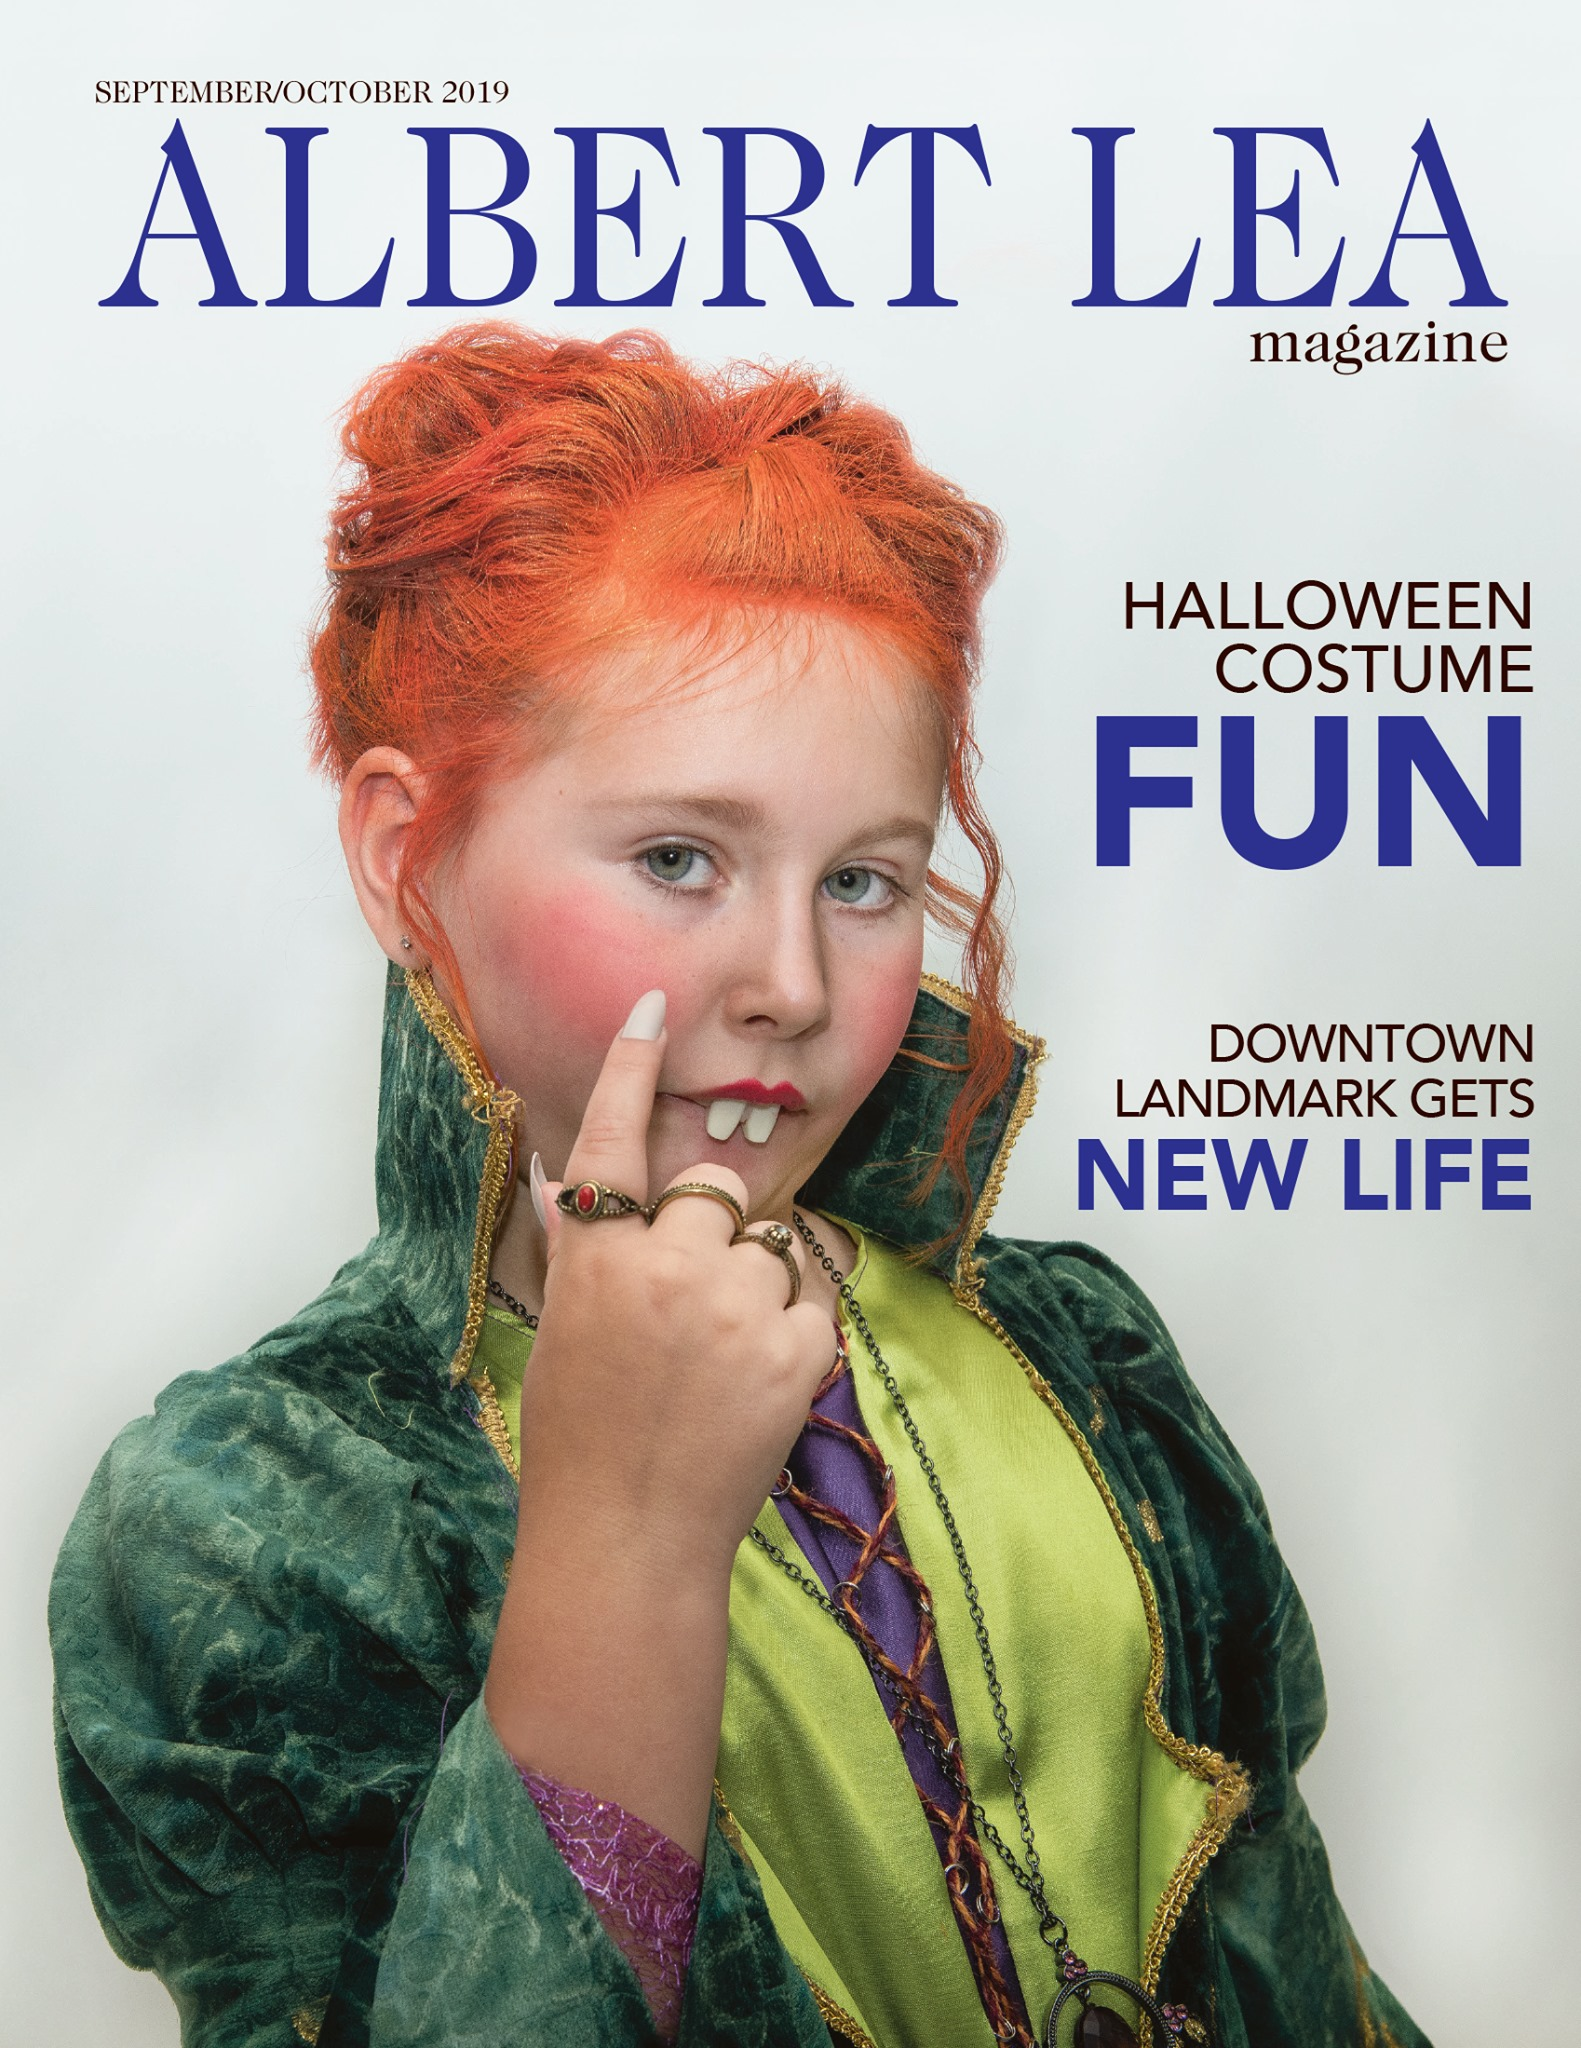 September/October Issue of the Albert Lea Magazine, cover photo.